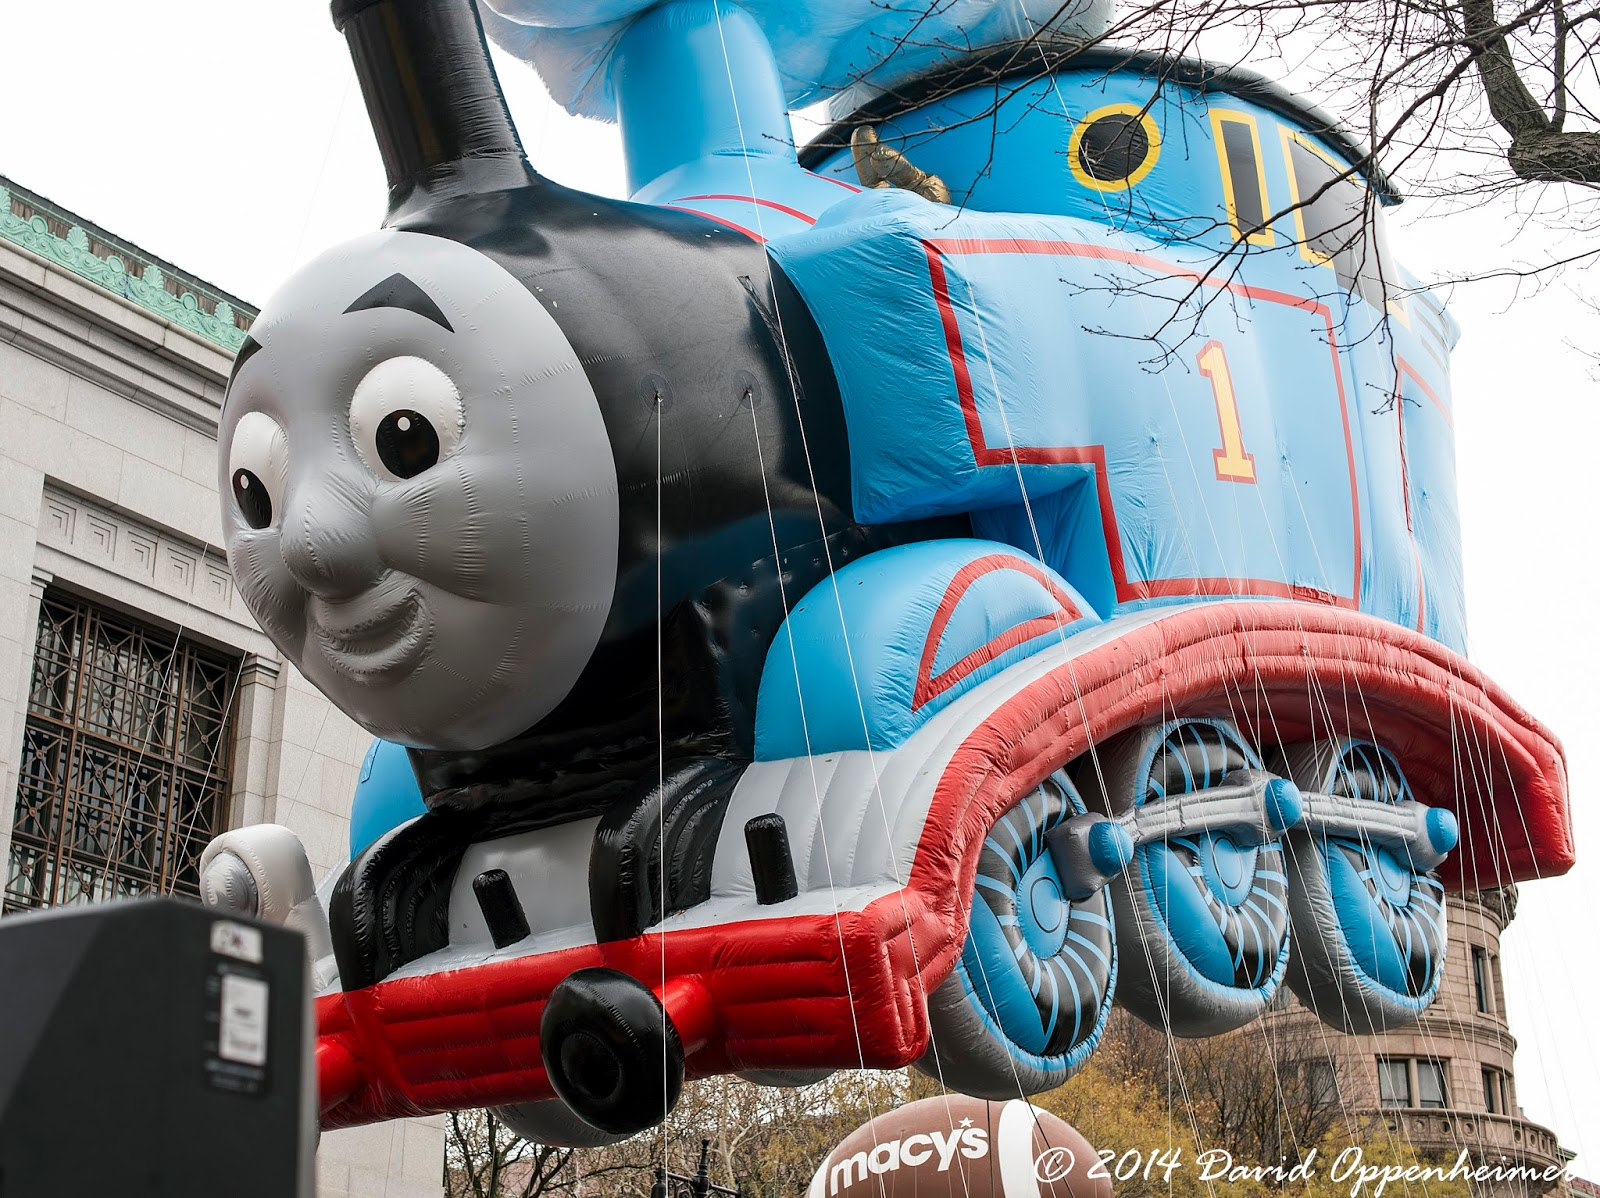 Thomas the Tank Engine by Mattel Inc.